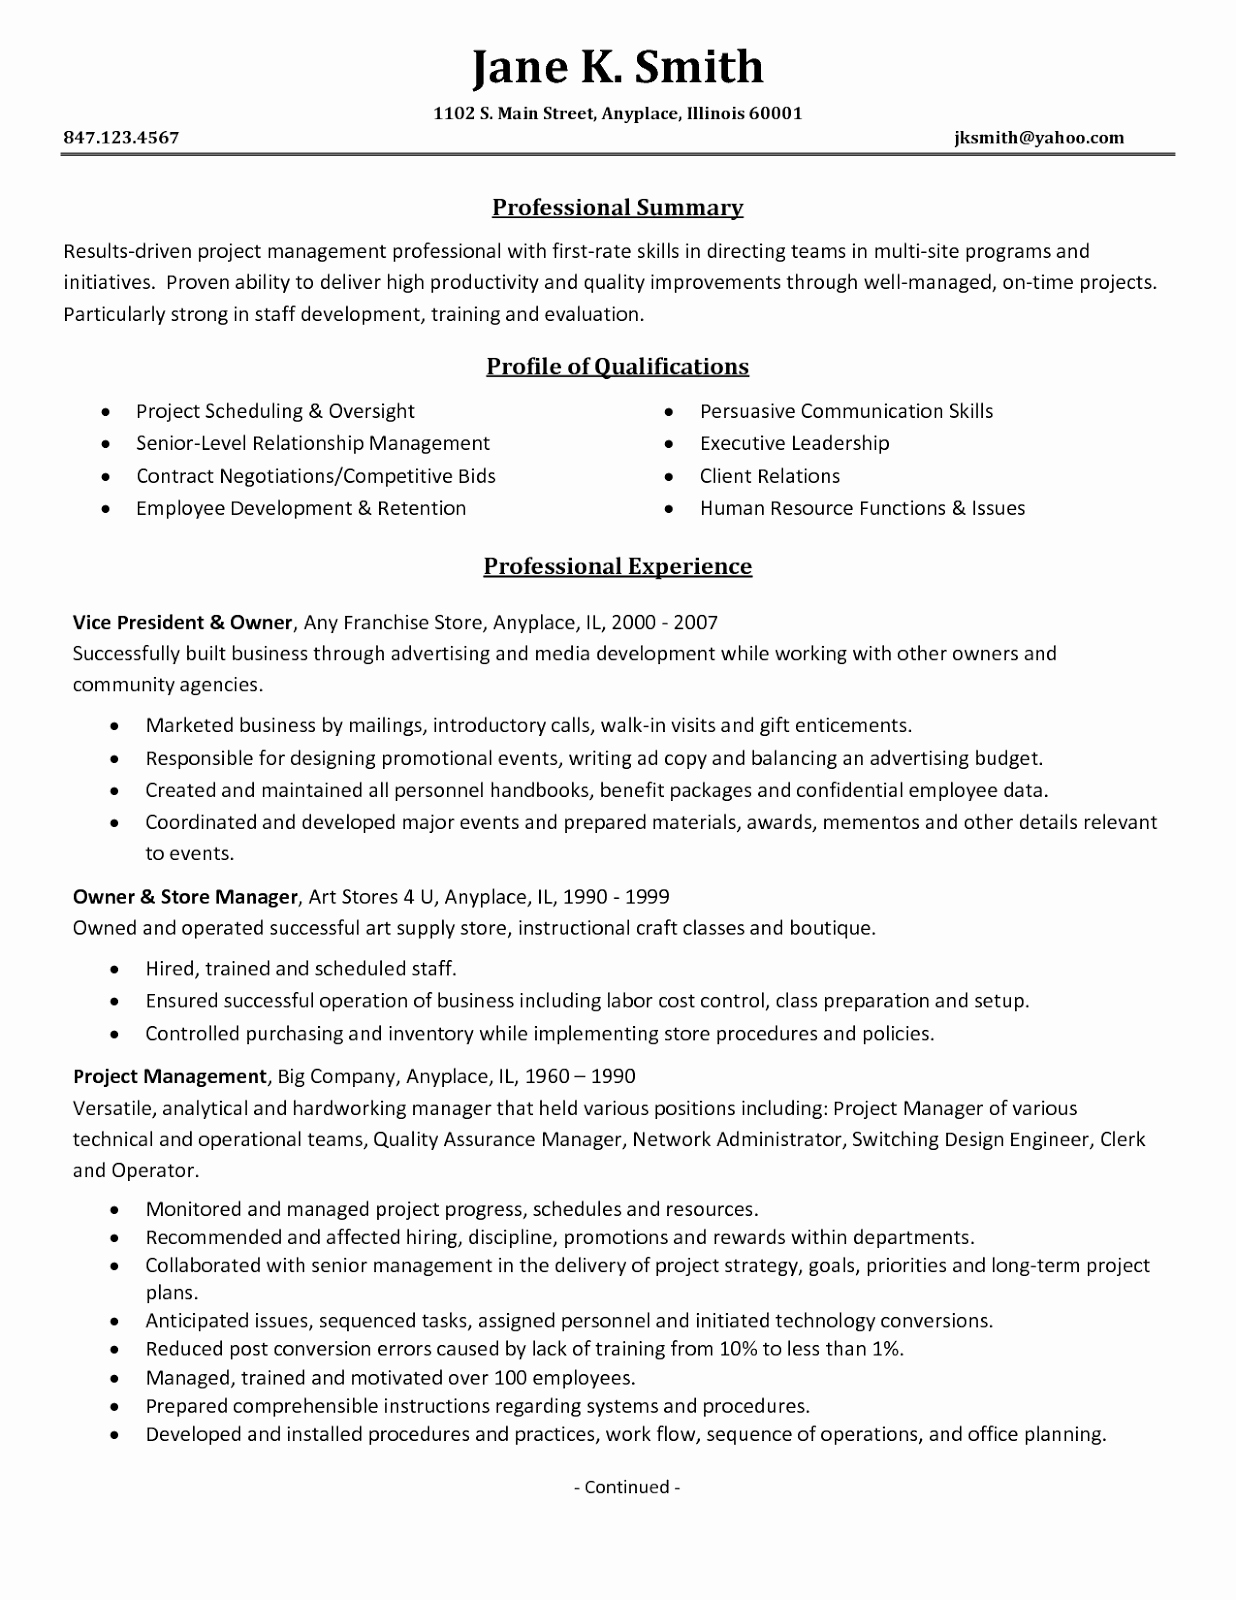 Project Management Resume Samples 2016